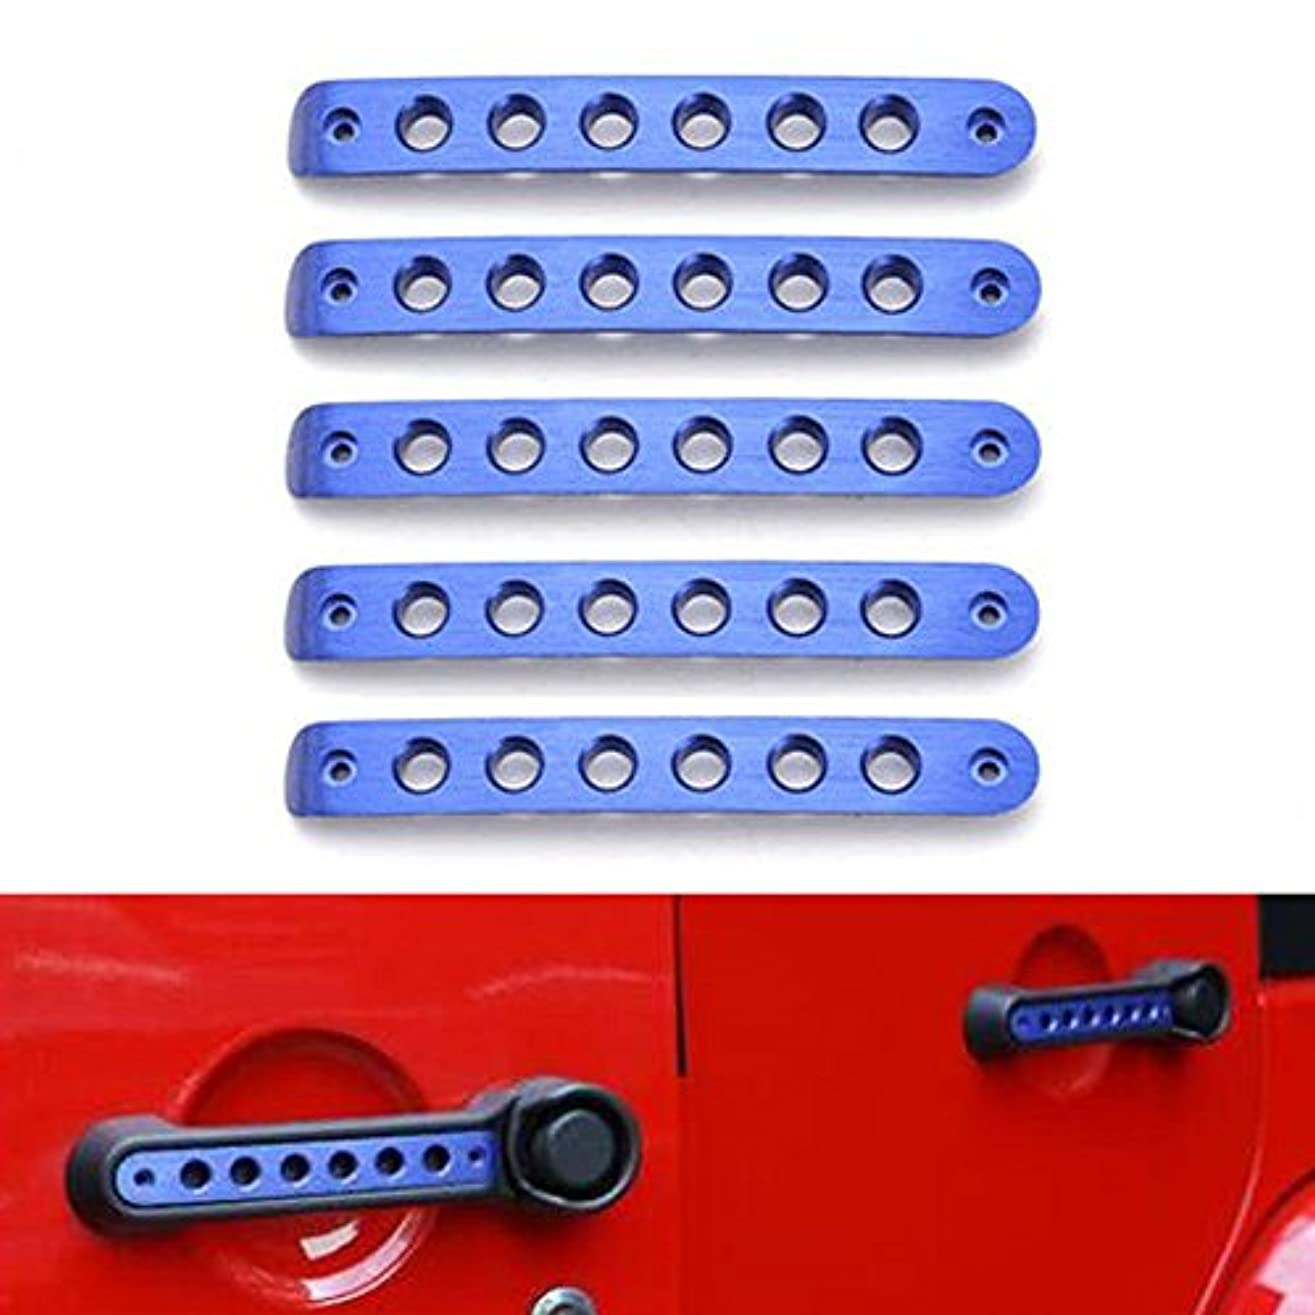 エネルギー羊の服を着た狼請願者Jicorzo - For Jeep Wrangler 4 Doors Car Exterior Door Handle Bar Mouldings Cover Trim Styling Decor Stickers Automobile...